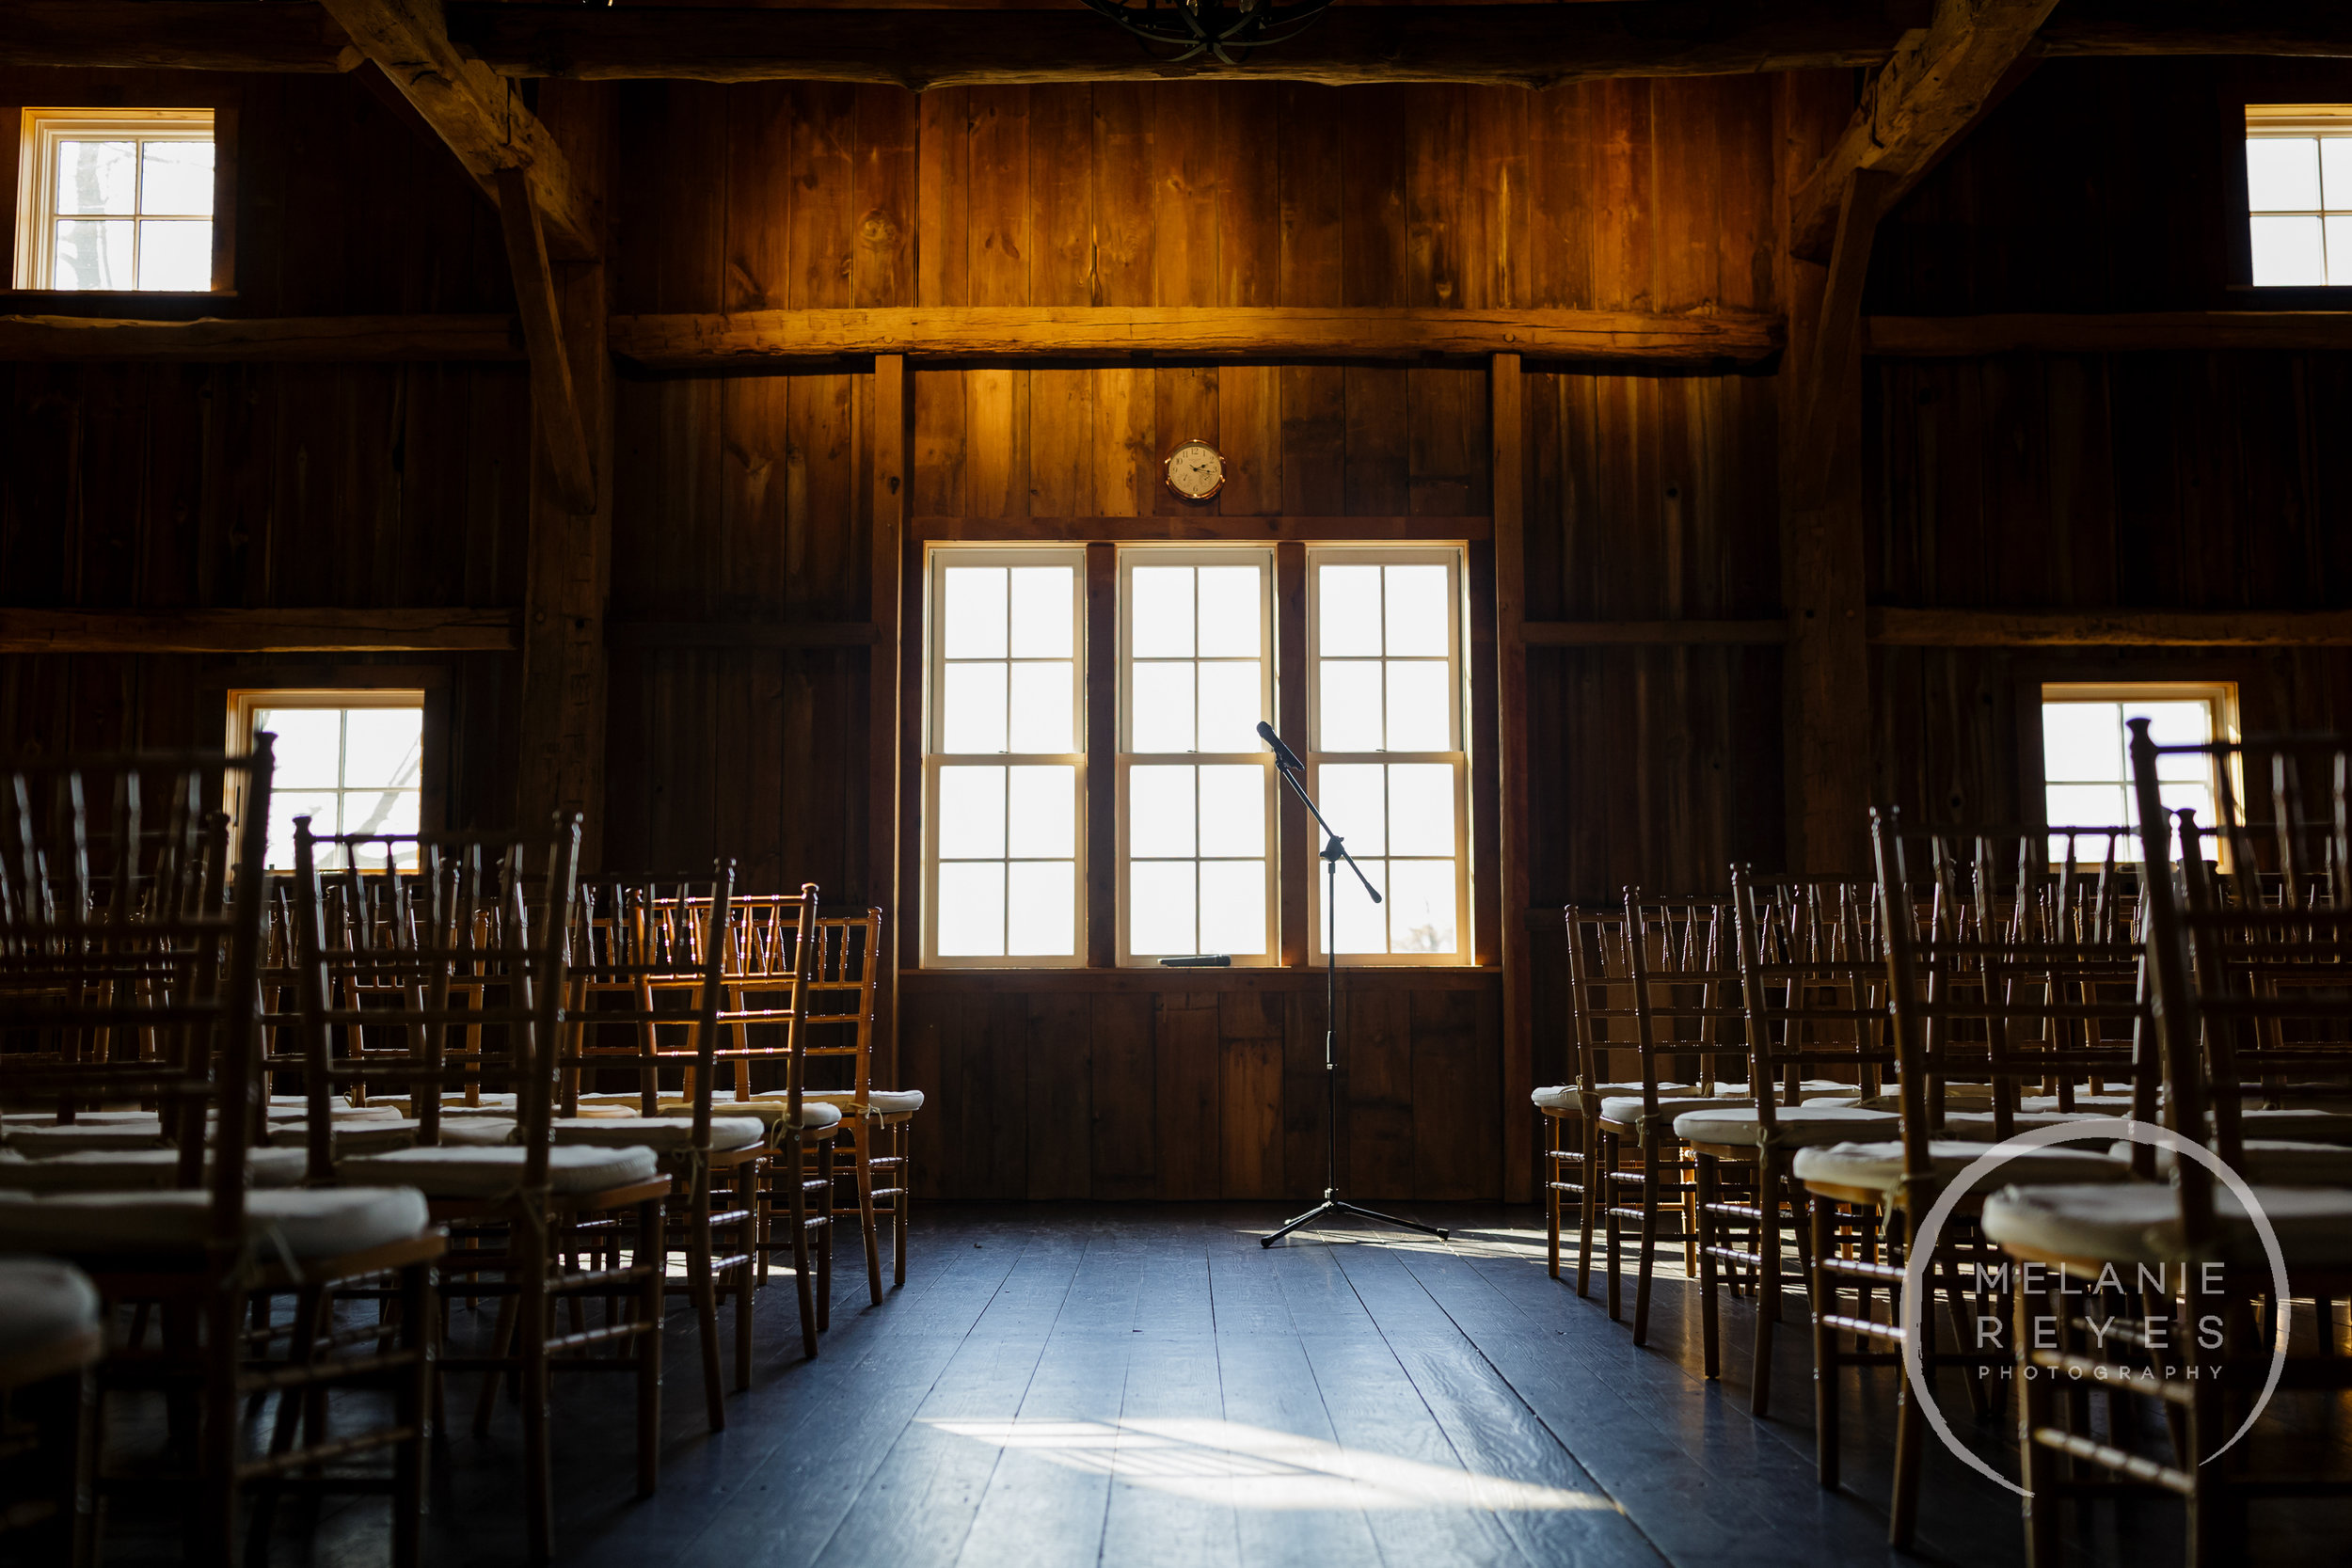 zingermans_cornman_farms_wedding_melanie_reyes_photography_003.JPG